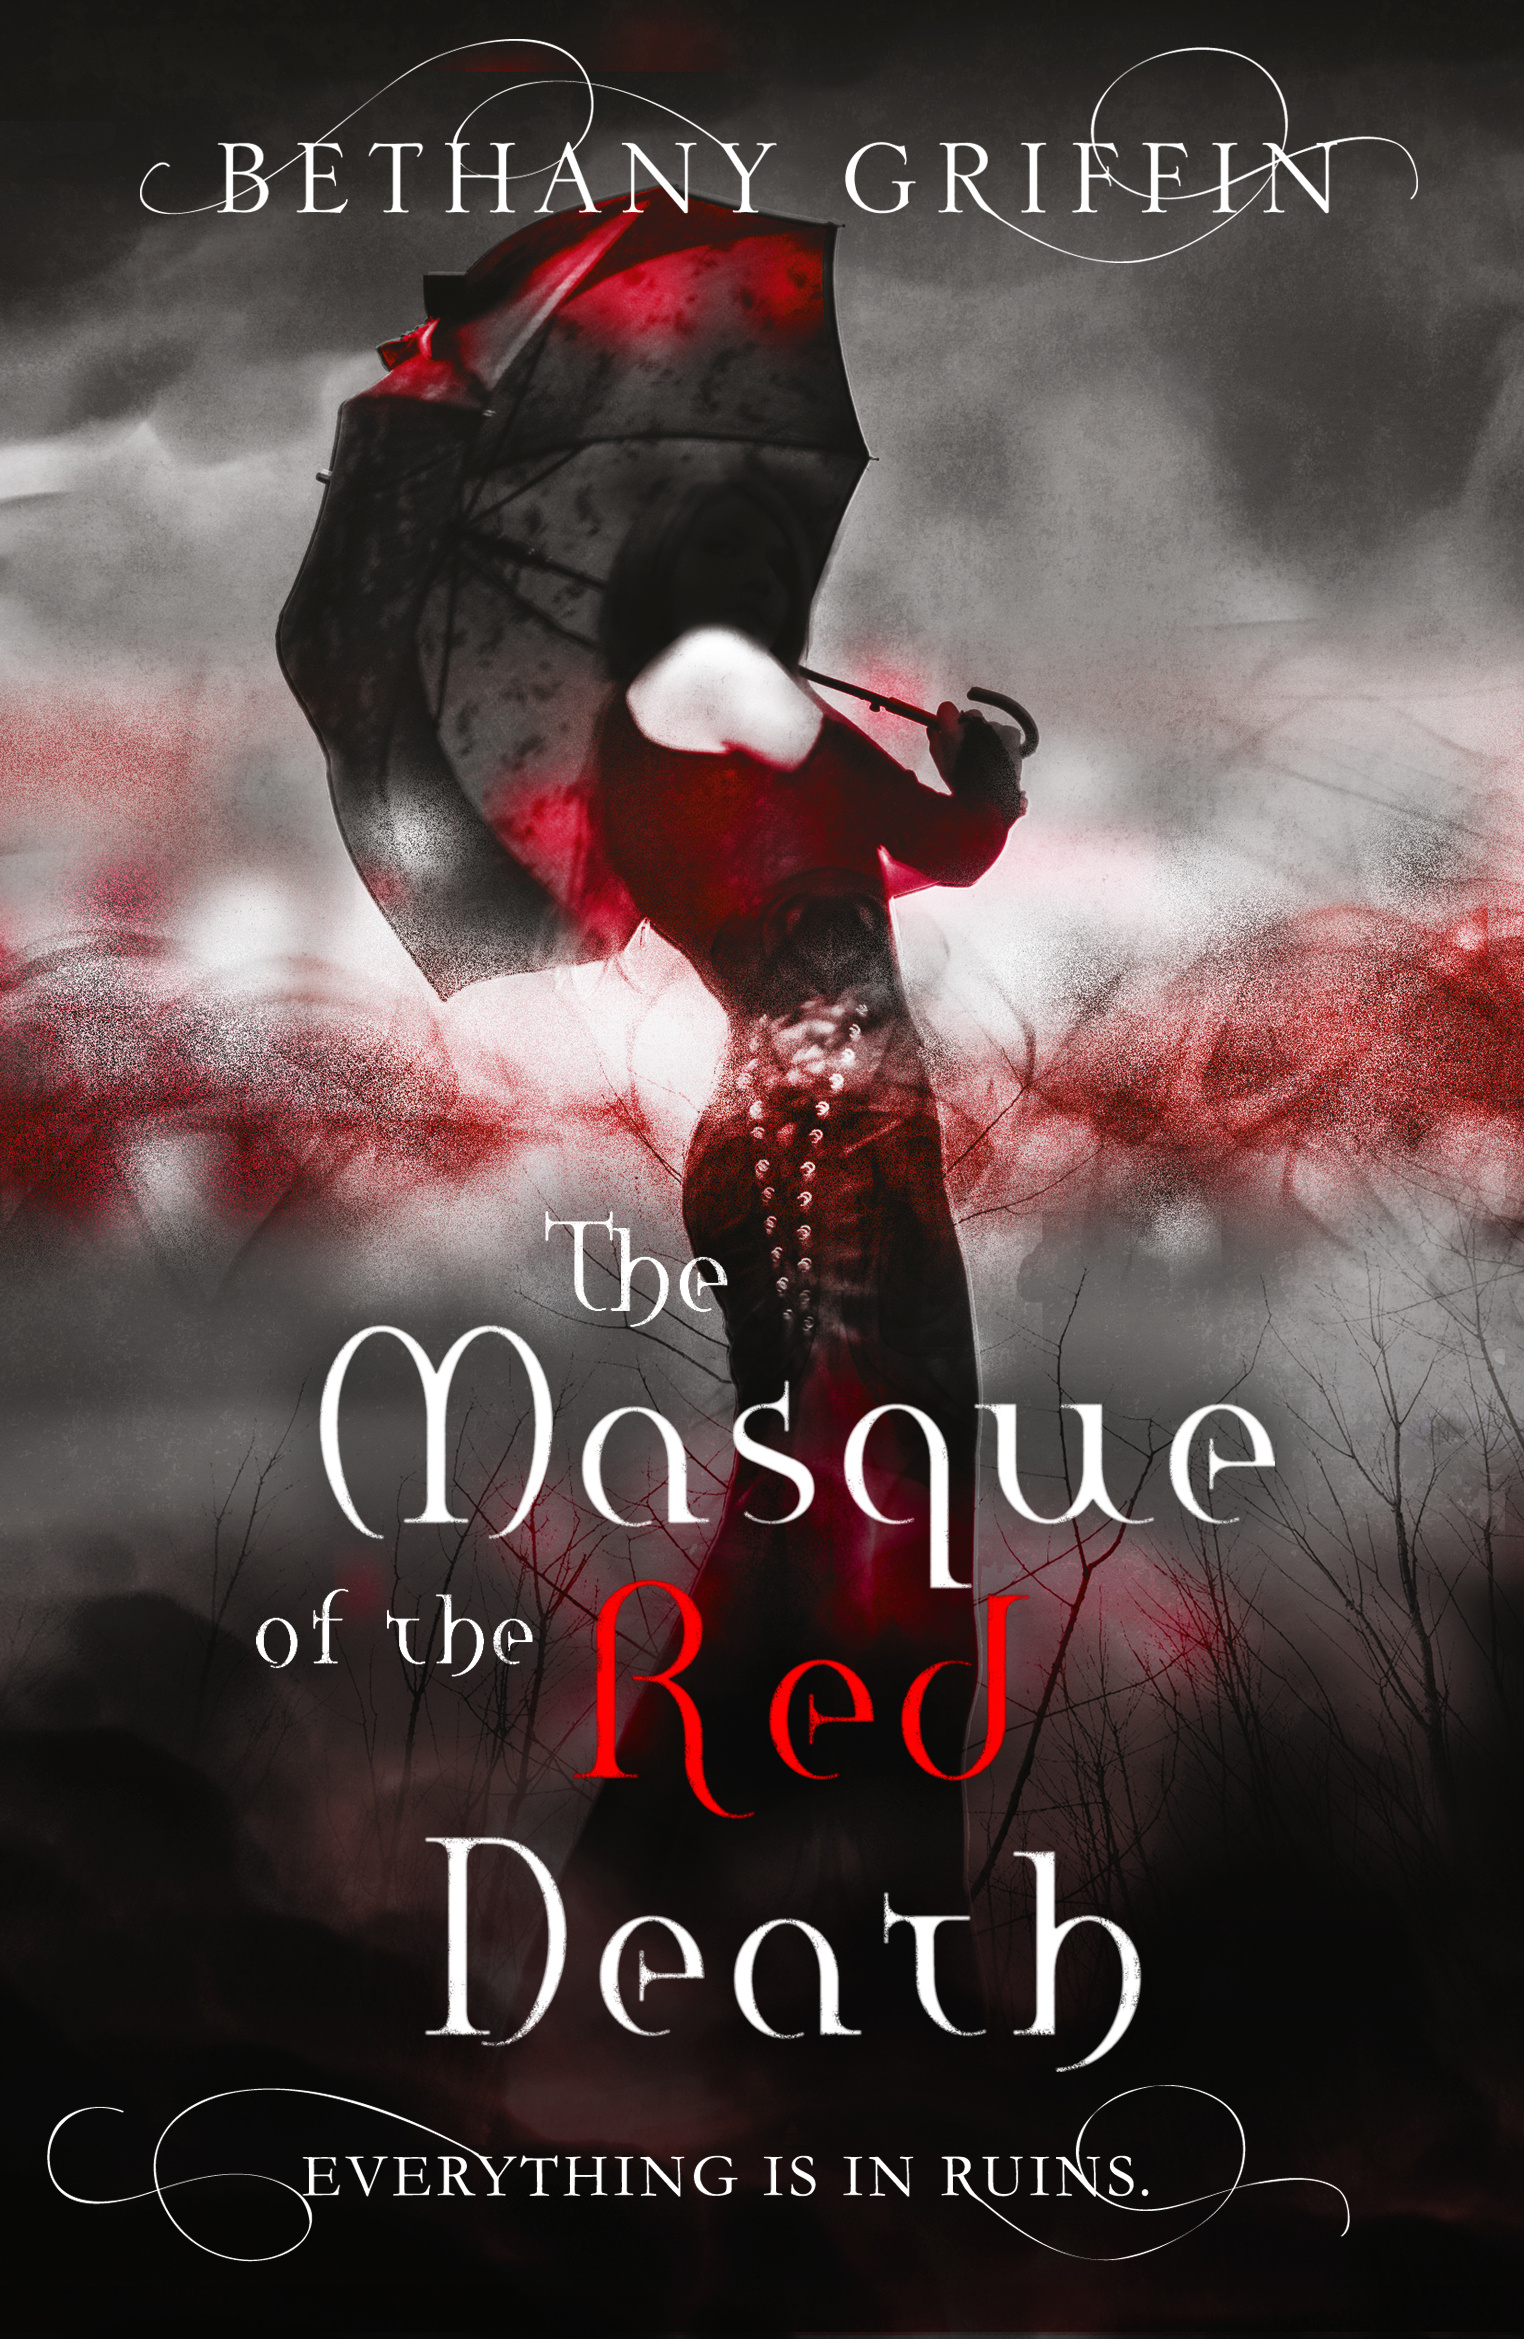 The Masque of the Red Death by Bethany Griffin - Books - Hachette